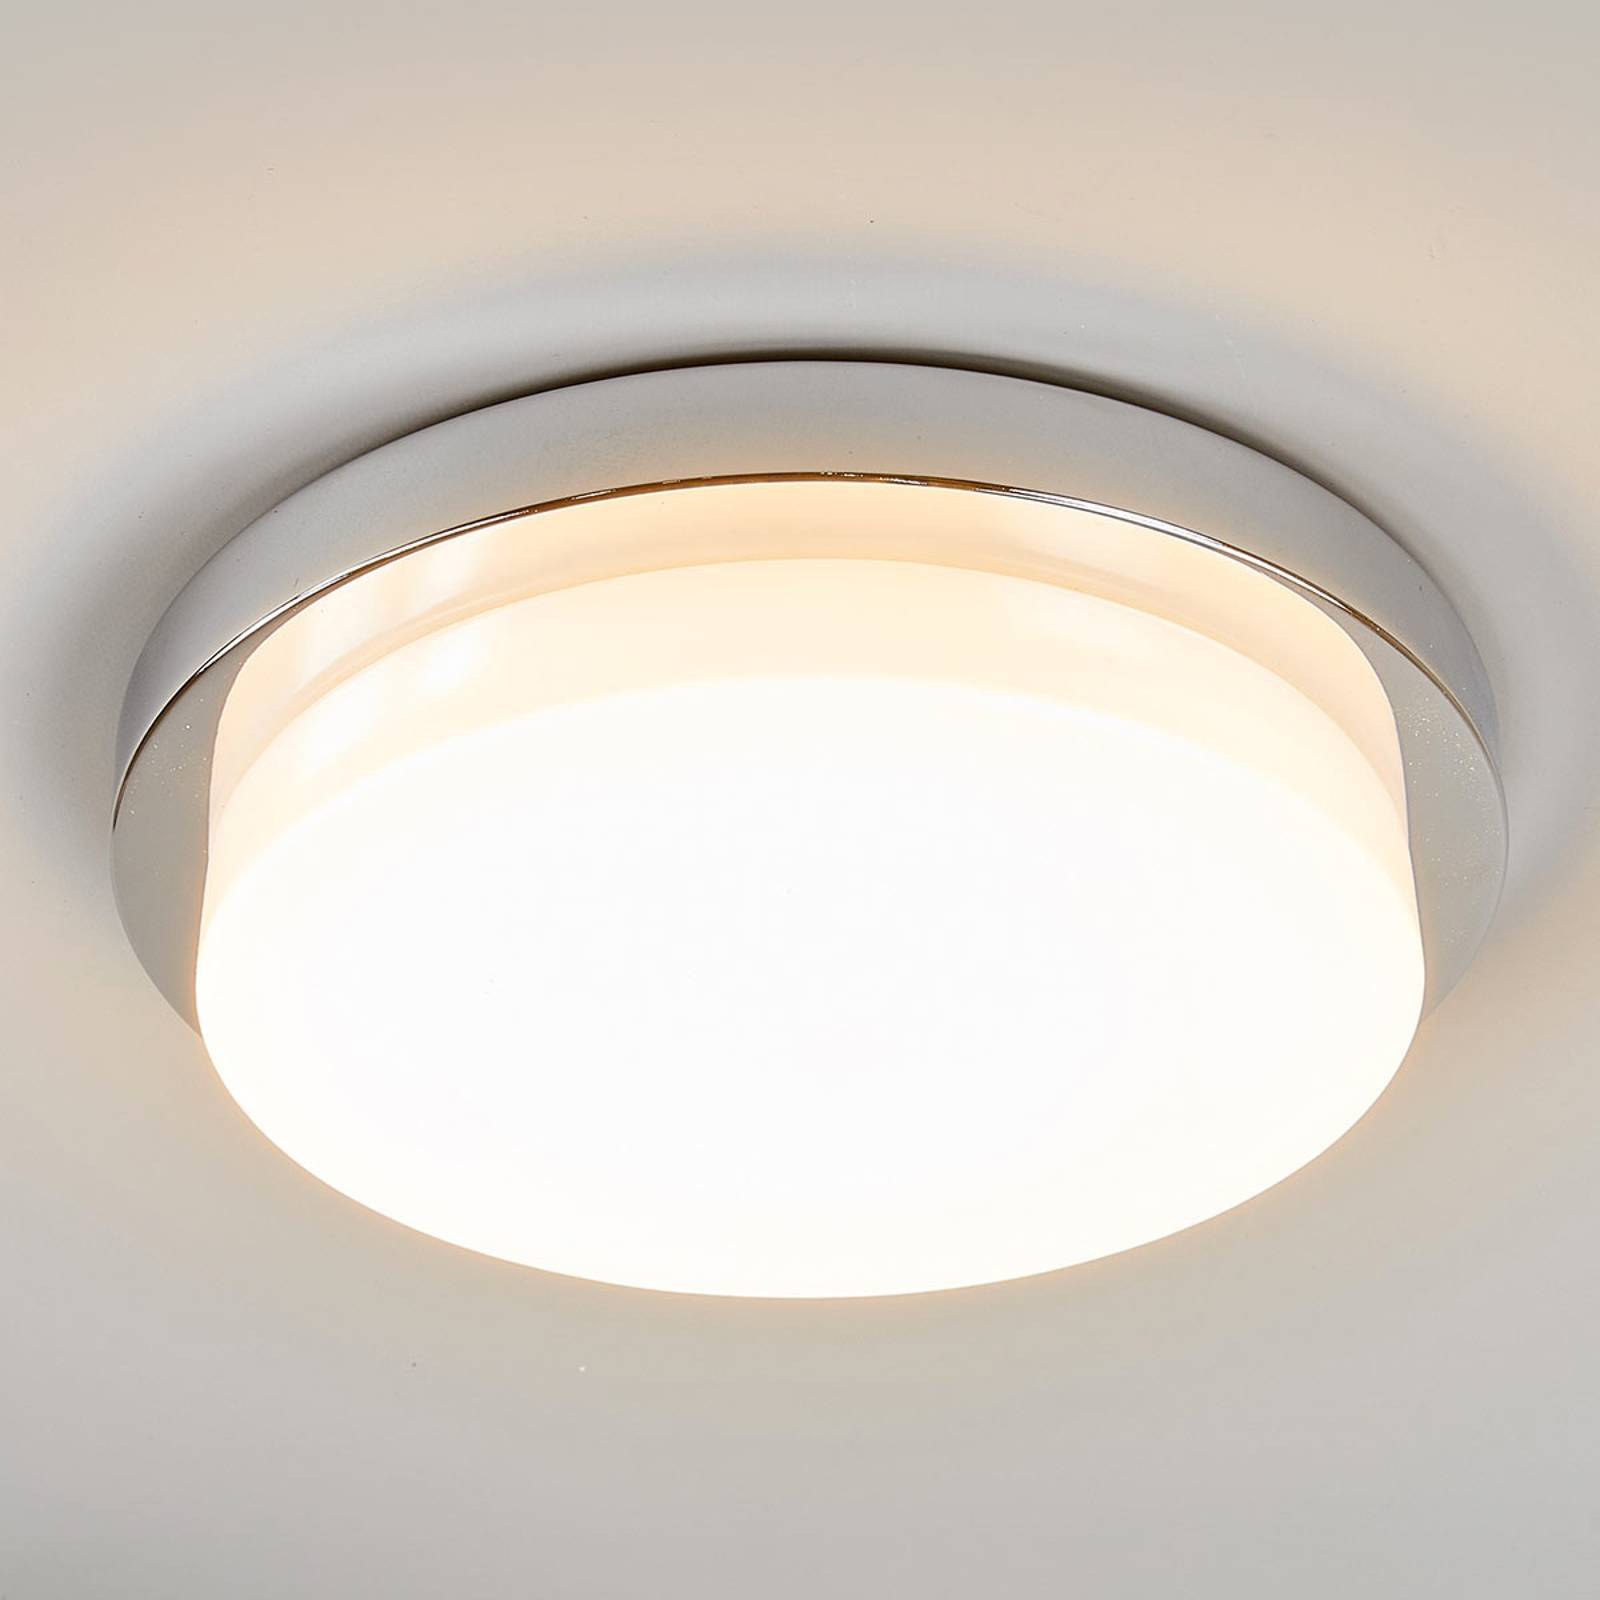 Glossy chrome LED ceiling light Cordula, IP44 from Lindby